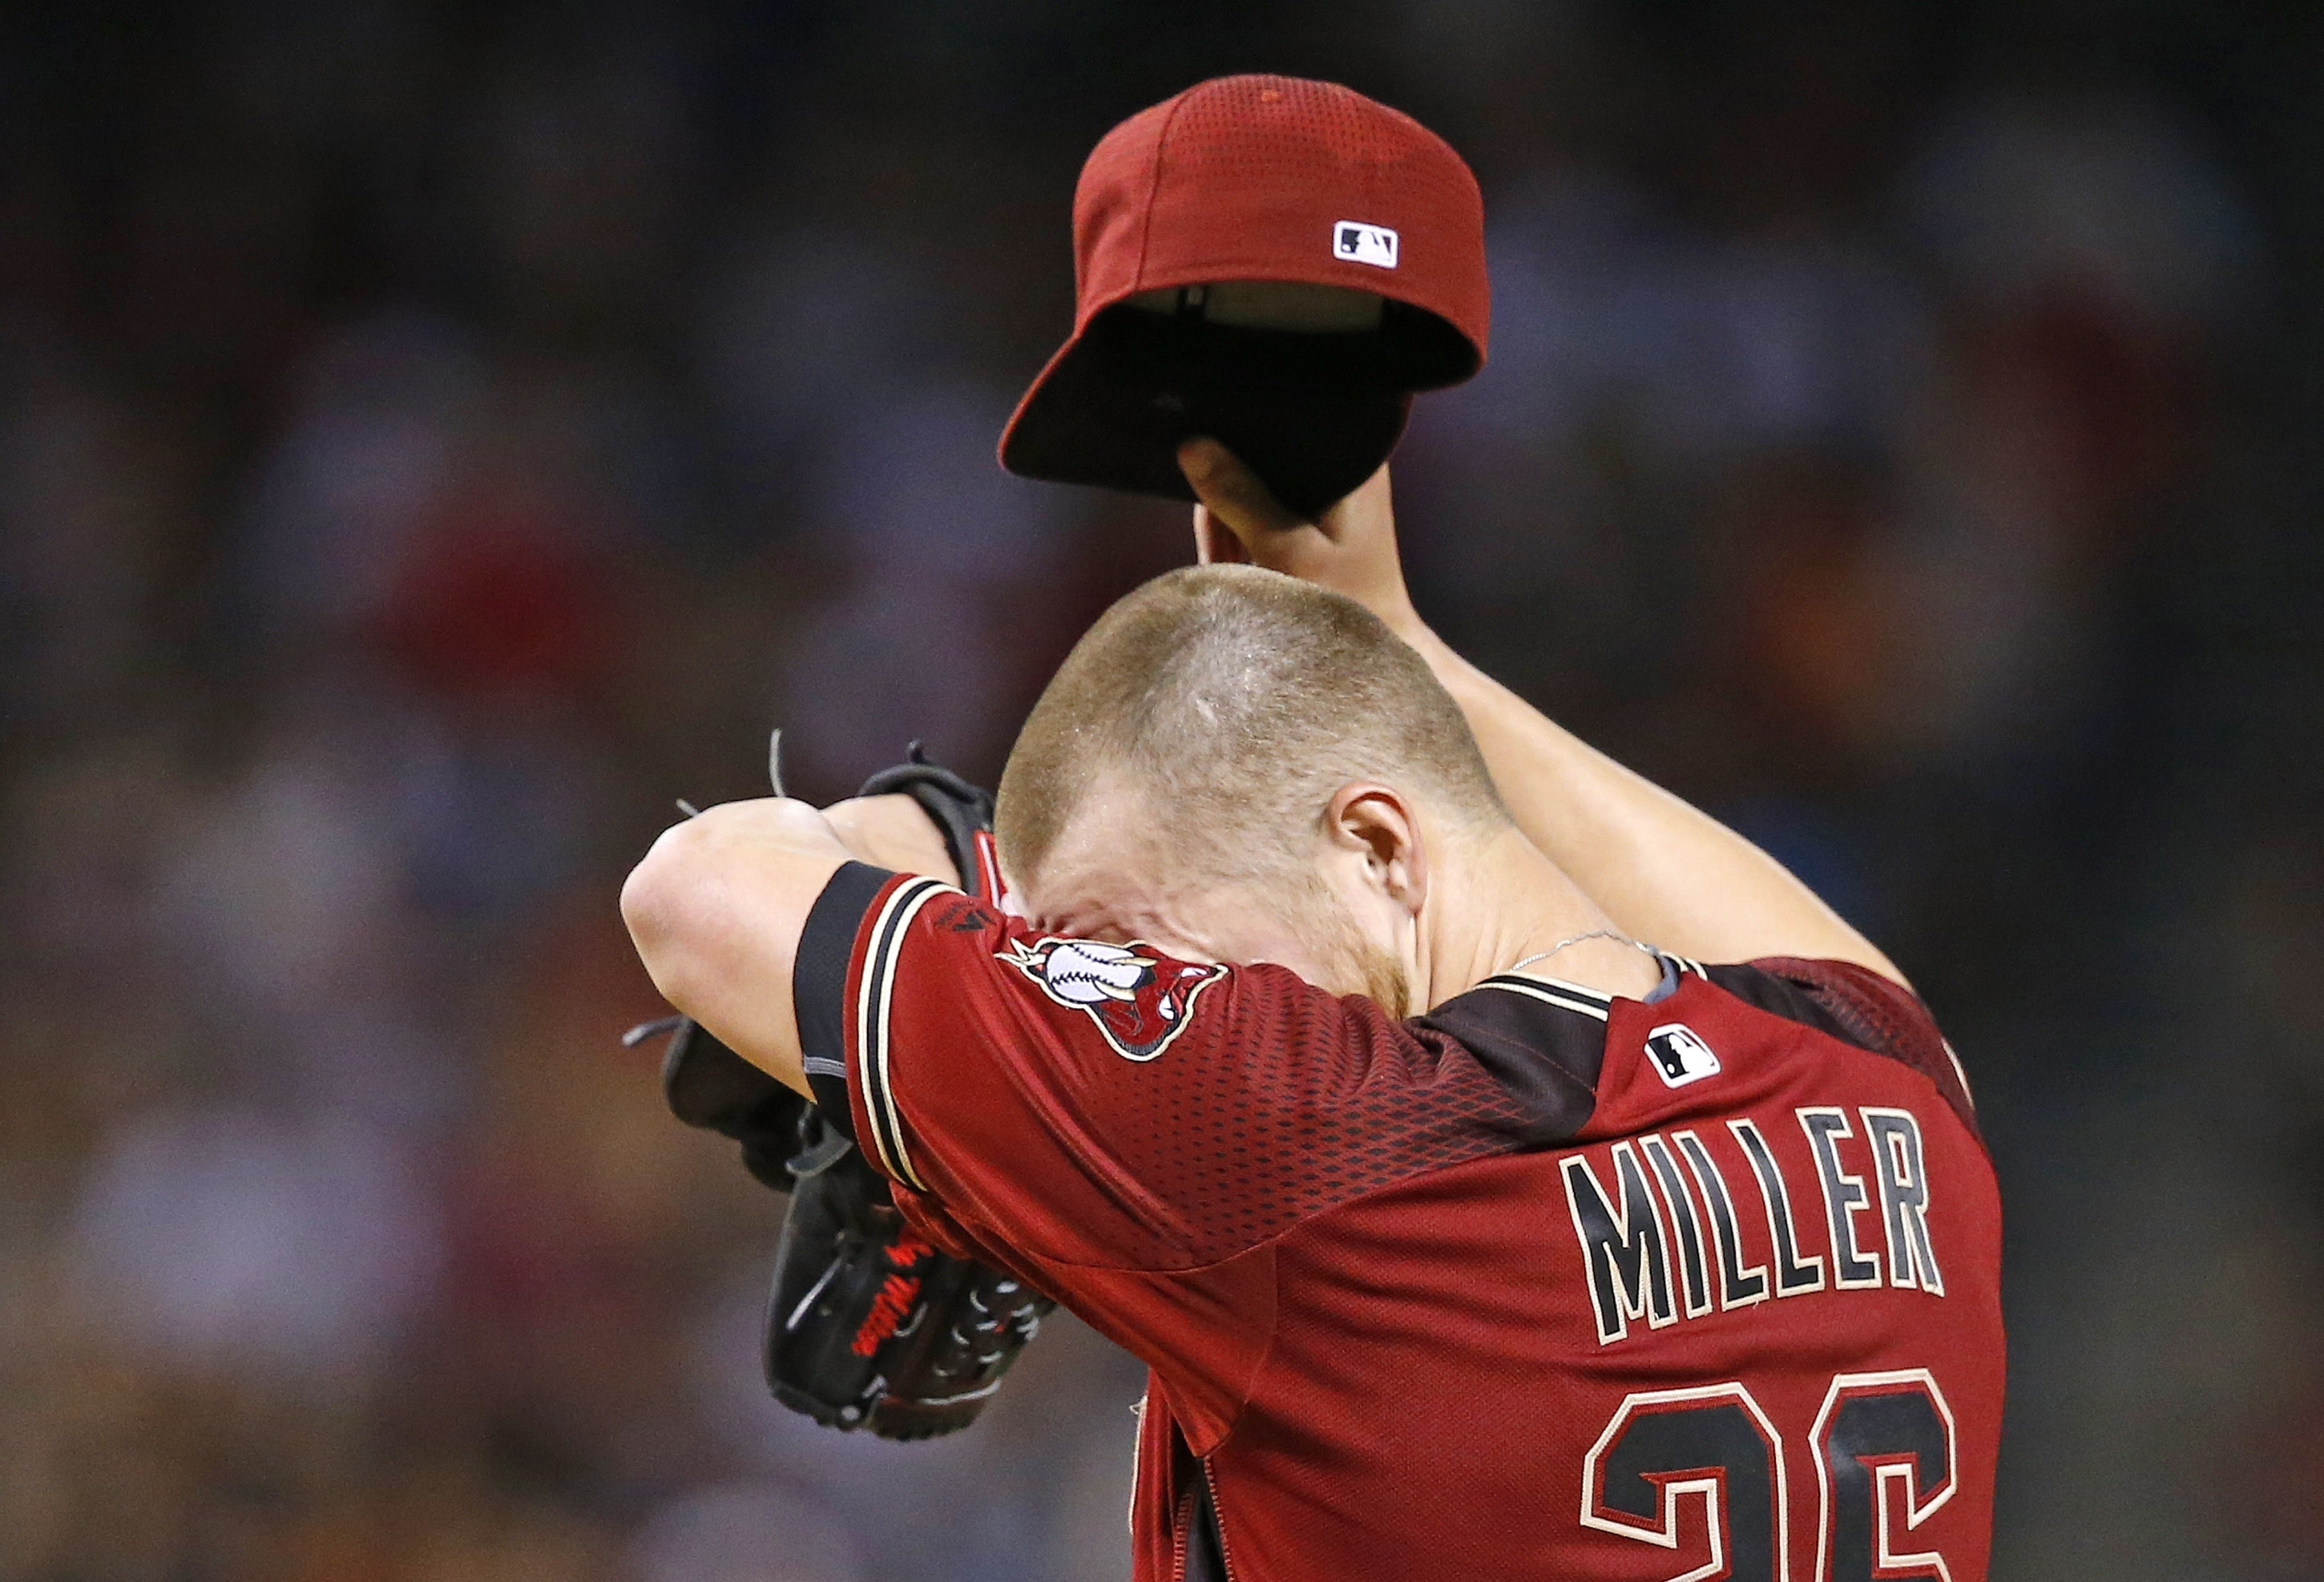 Arizona Diamondbacks' Shelby Miller wipes sweat from his forehead as he struggles, giving up five runs to the San Diego Padres, during the fourth inning of a baseball game Wednesday, July 6, 2016, in Phoenix. (AP Photo/Ross D. Franklin)